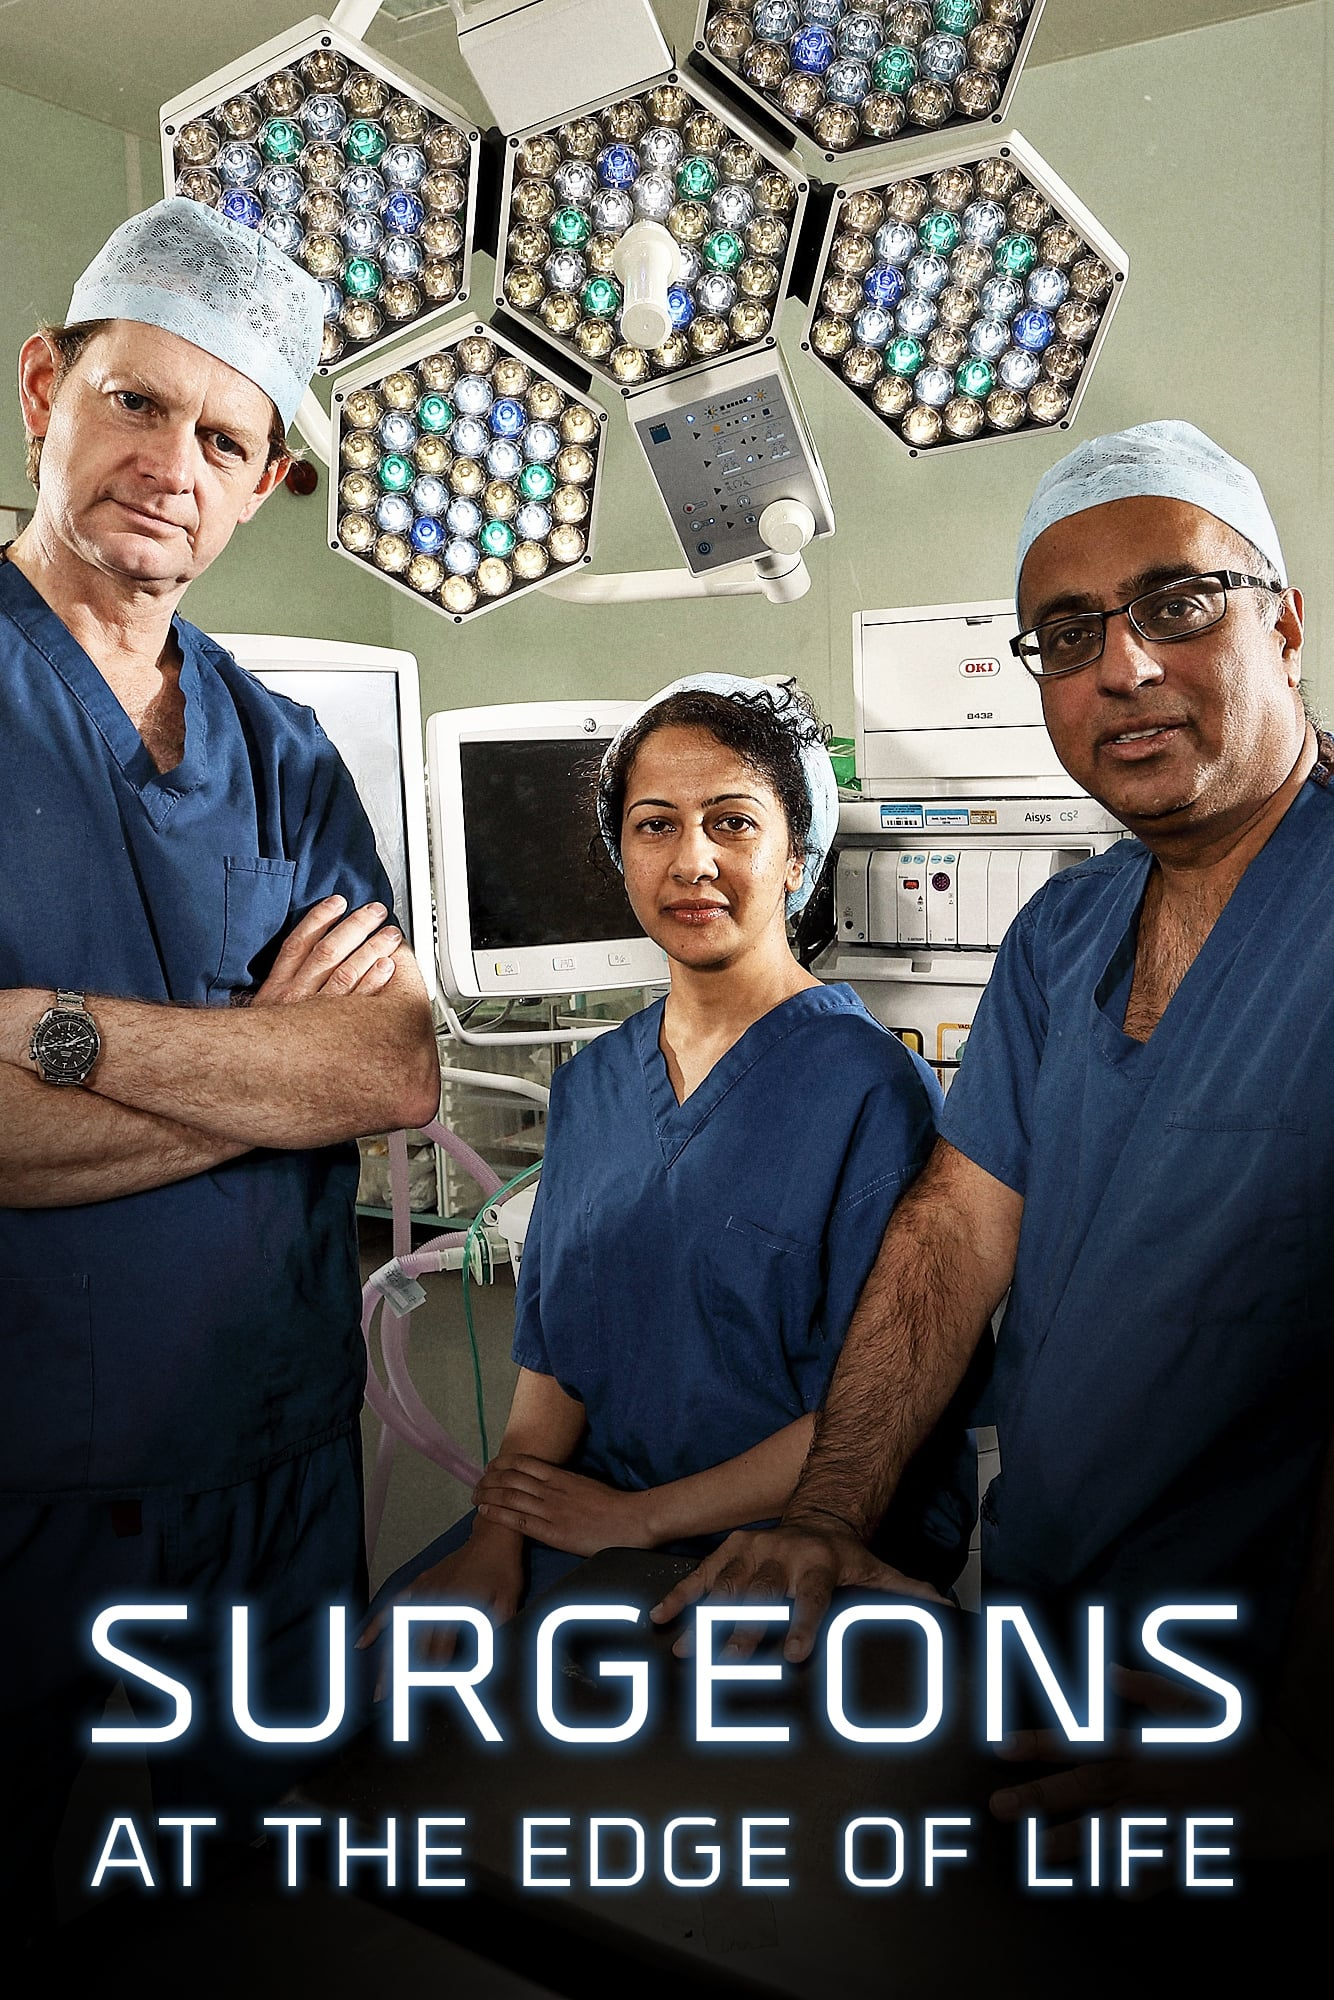 Surgeons: At the Edge of Life (2018)